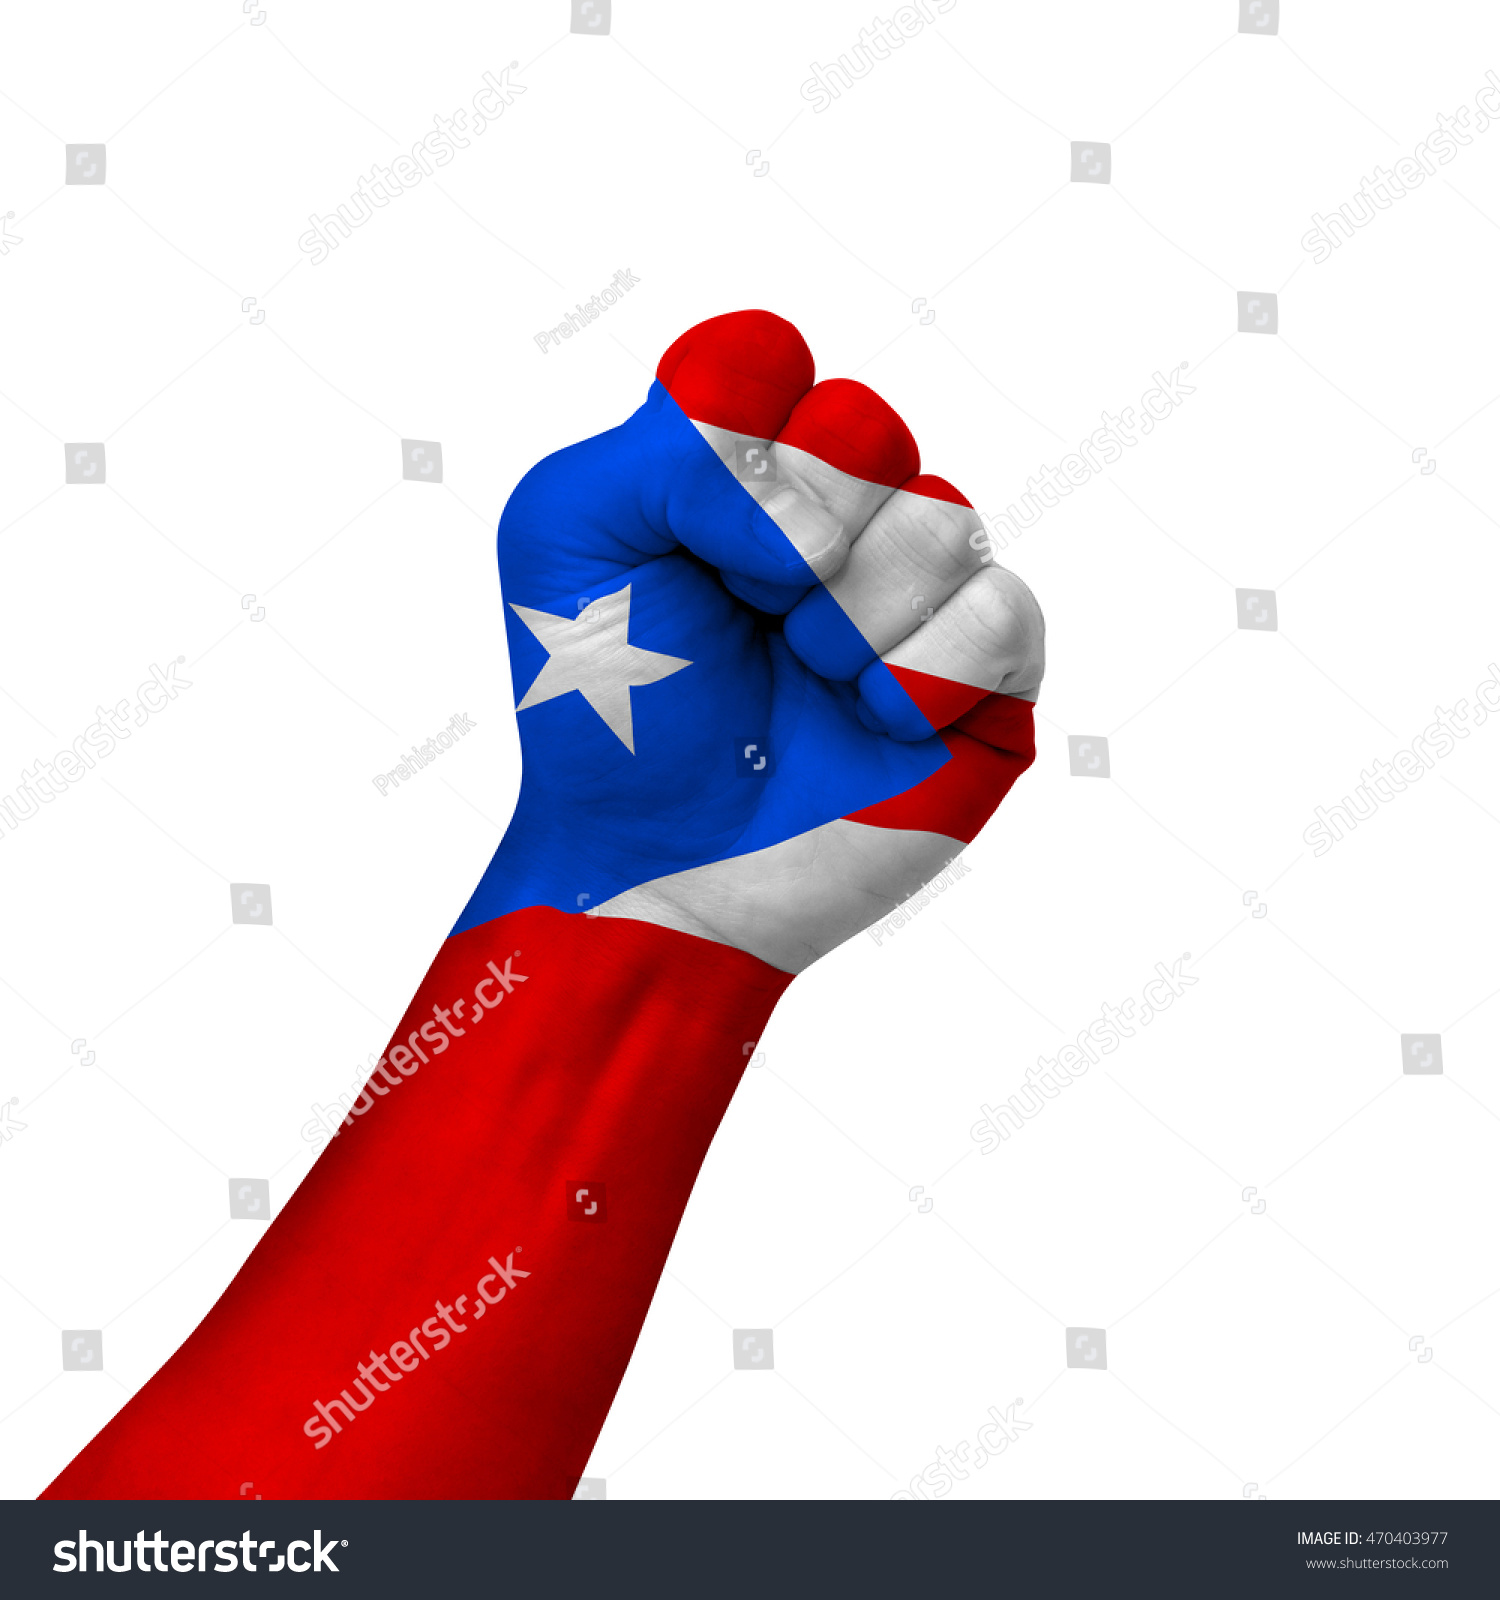 Hand making victory sign puerto rico stock photo 470403977 hand making victory sign puerto rico painted with flag as symbol of victory resistance biocorpaavc Choice Image